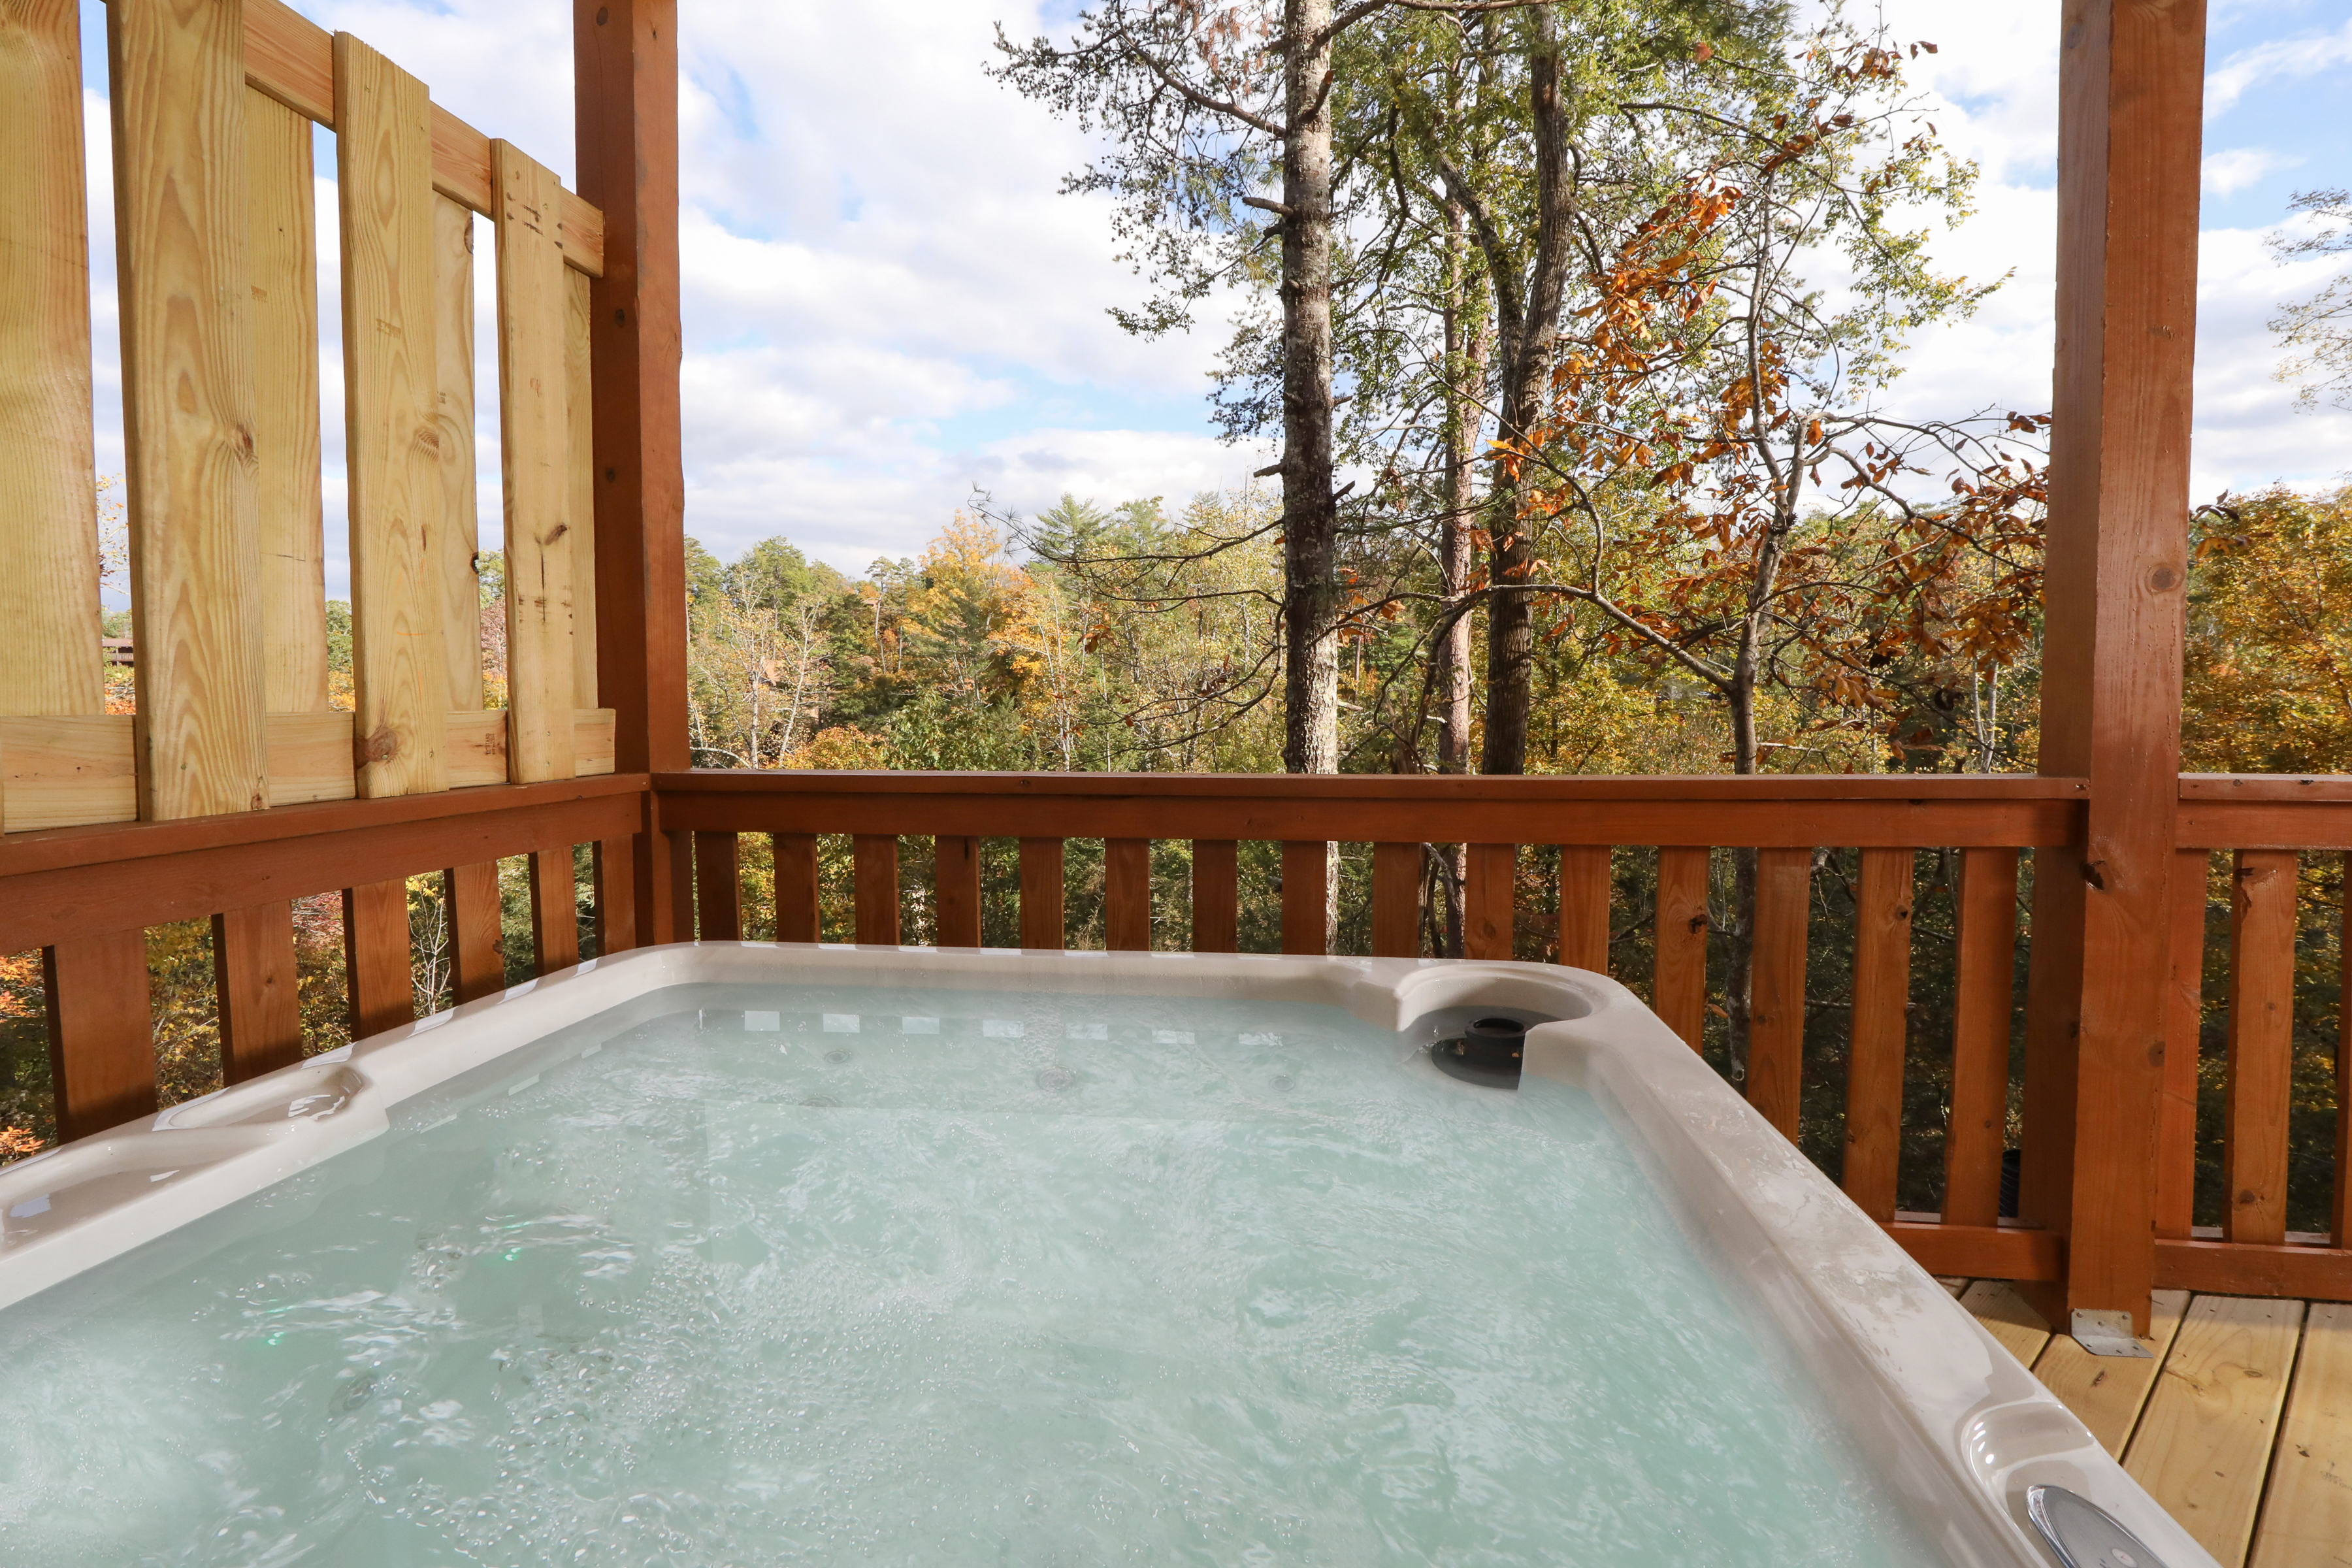 discount forge tennessee military pool pigeon with pools indoor in rentals cabin tn cabins